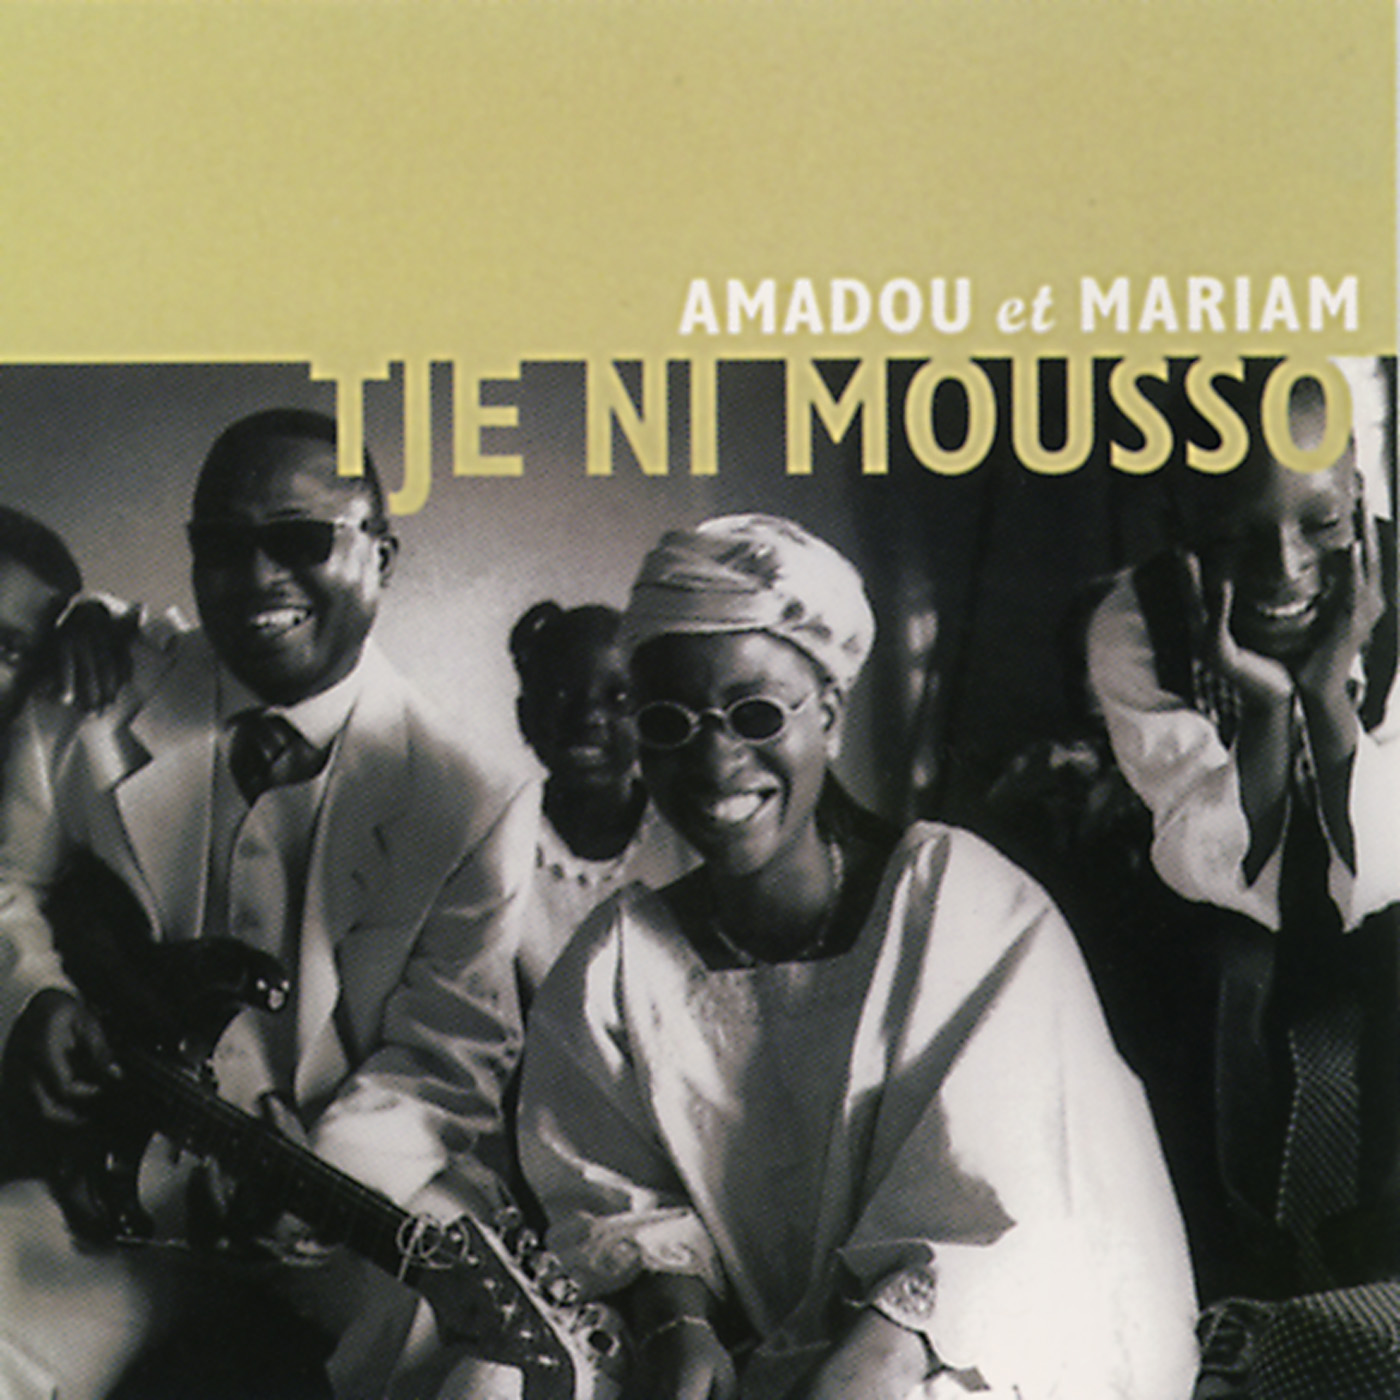 Tje Ni Mousso by Amadou & Mariam cover